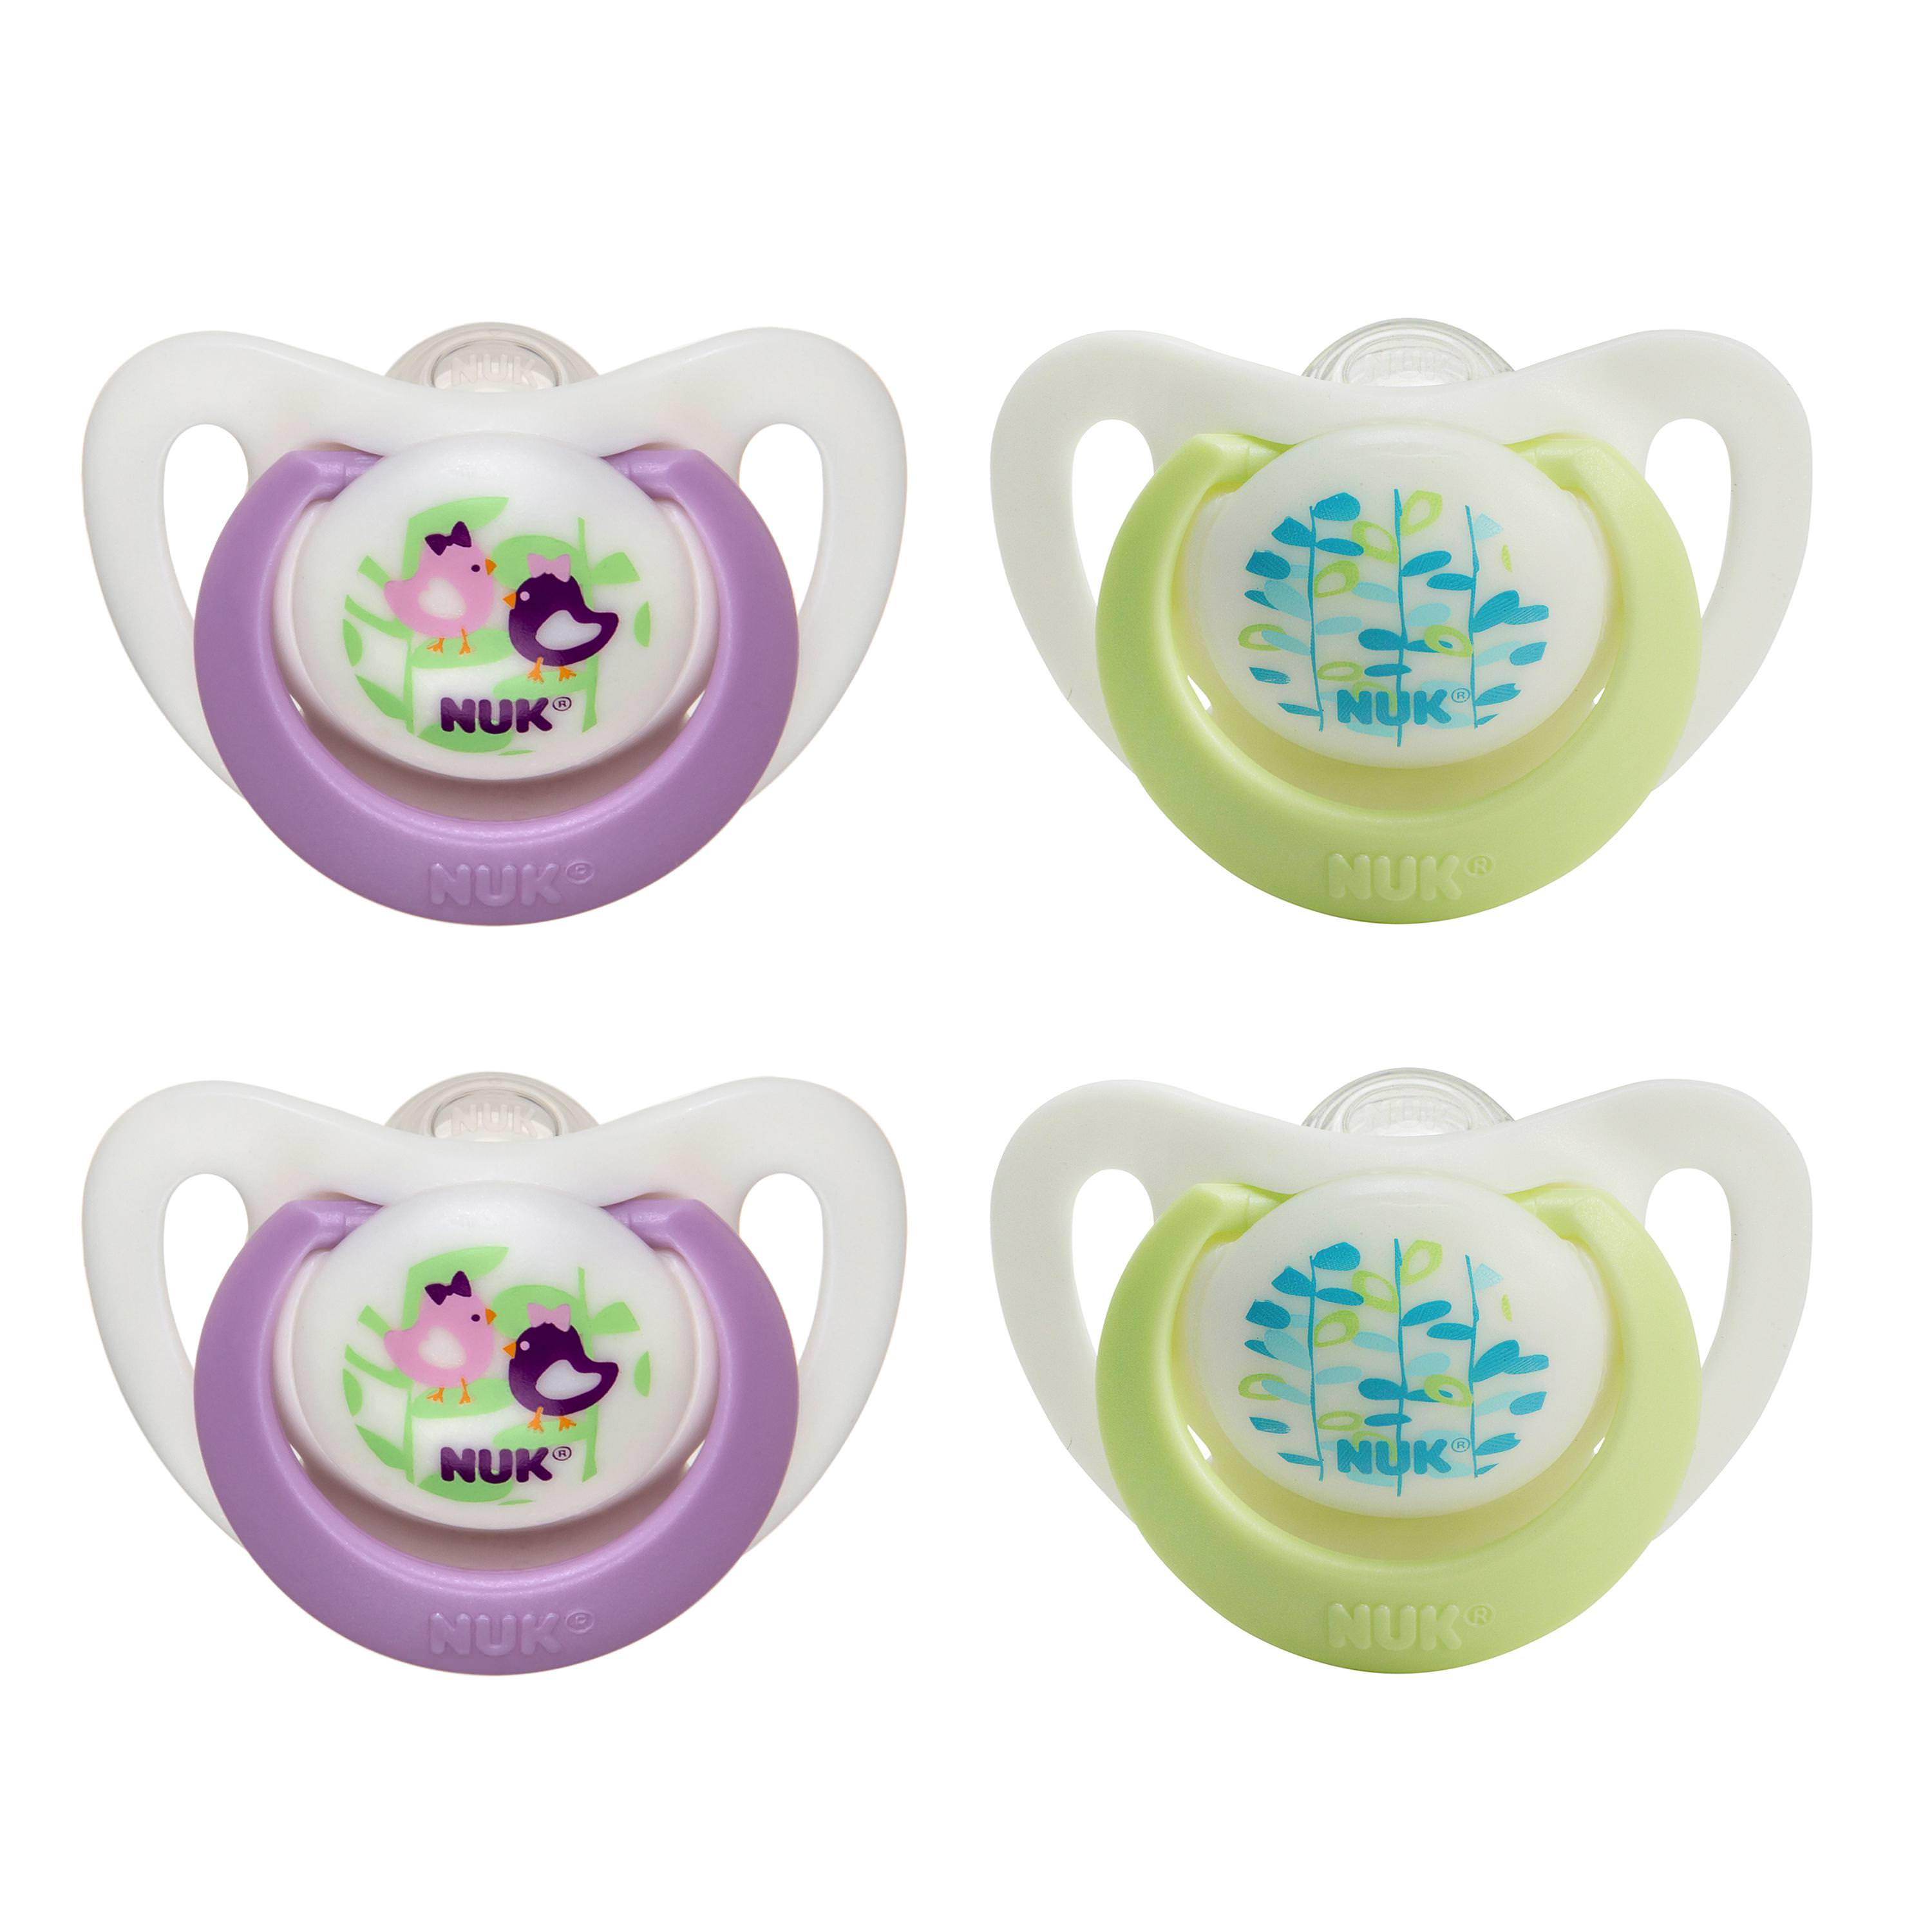 NUK Advanced Orthodontic Newborn Pacifiers, 0-2 Months, Girl Colors - 4 Counts